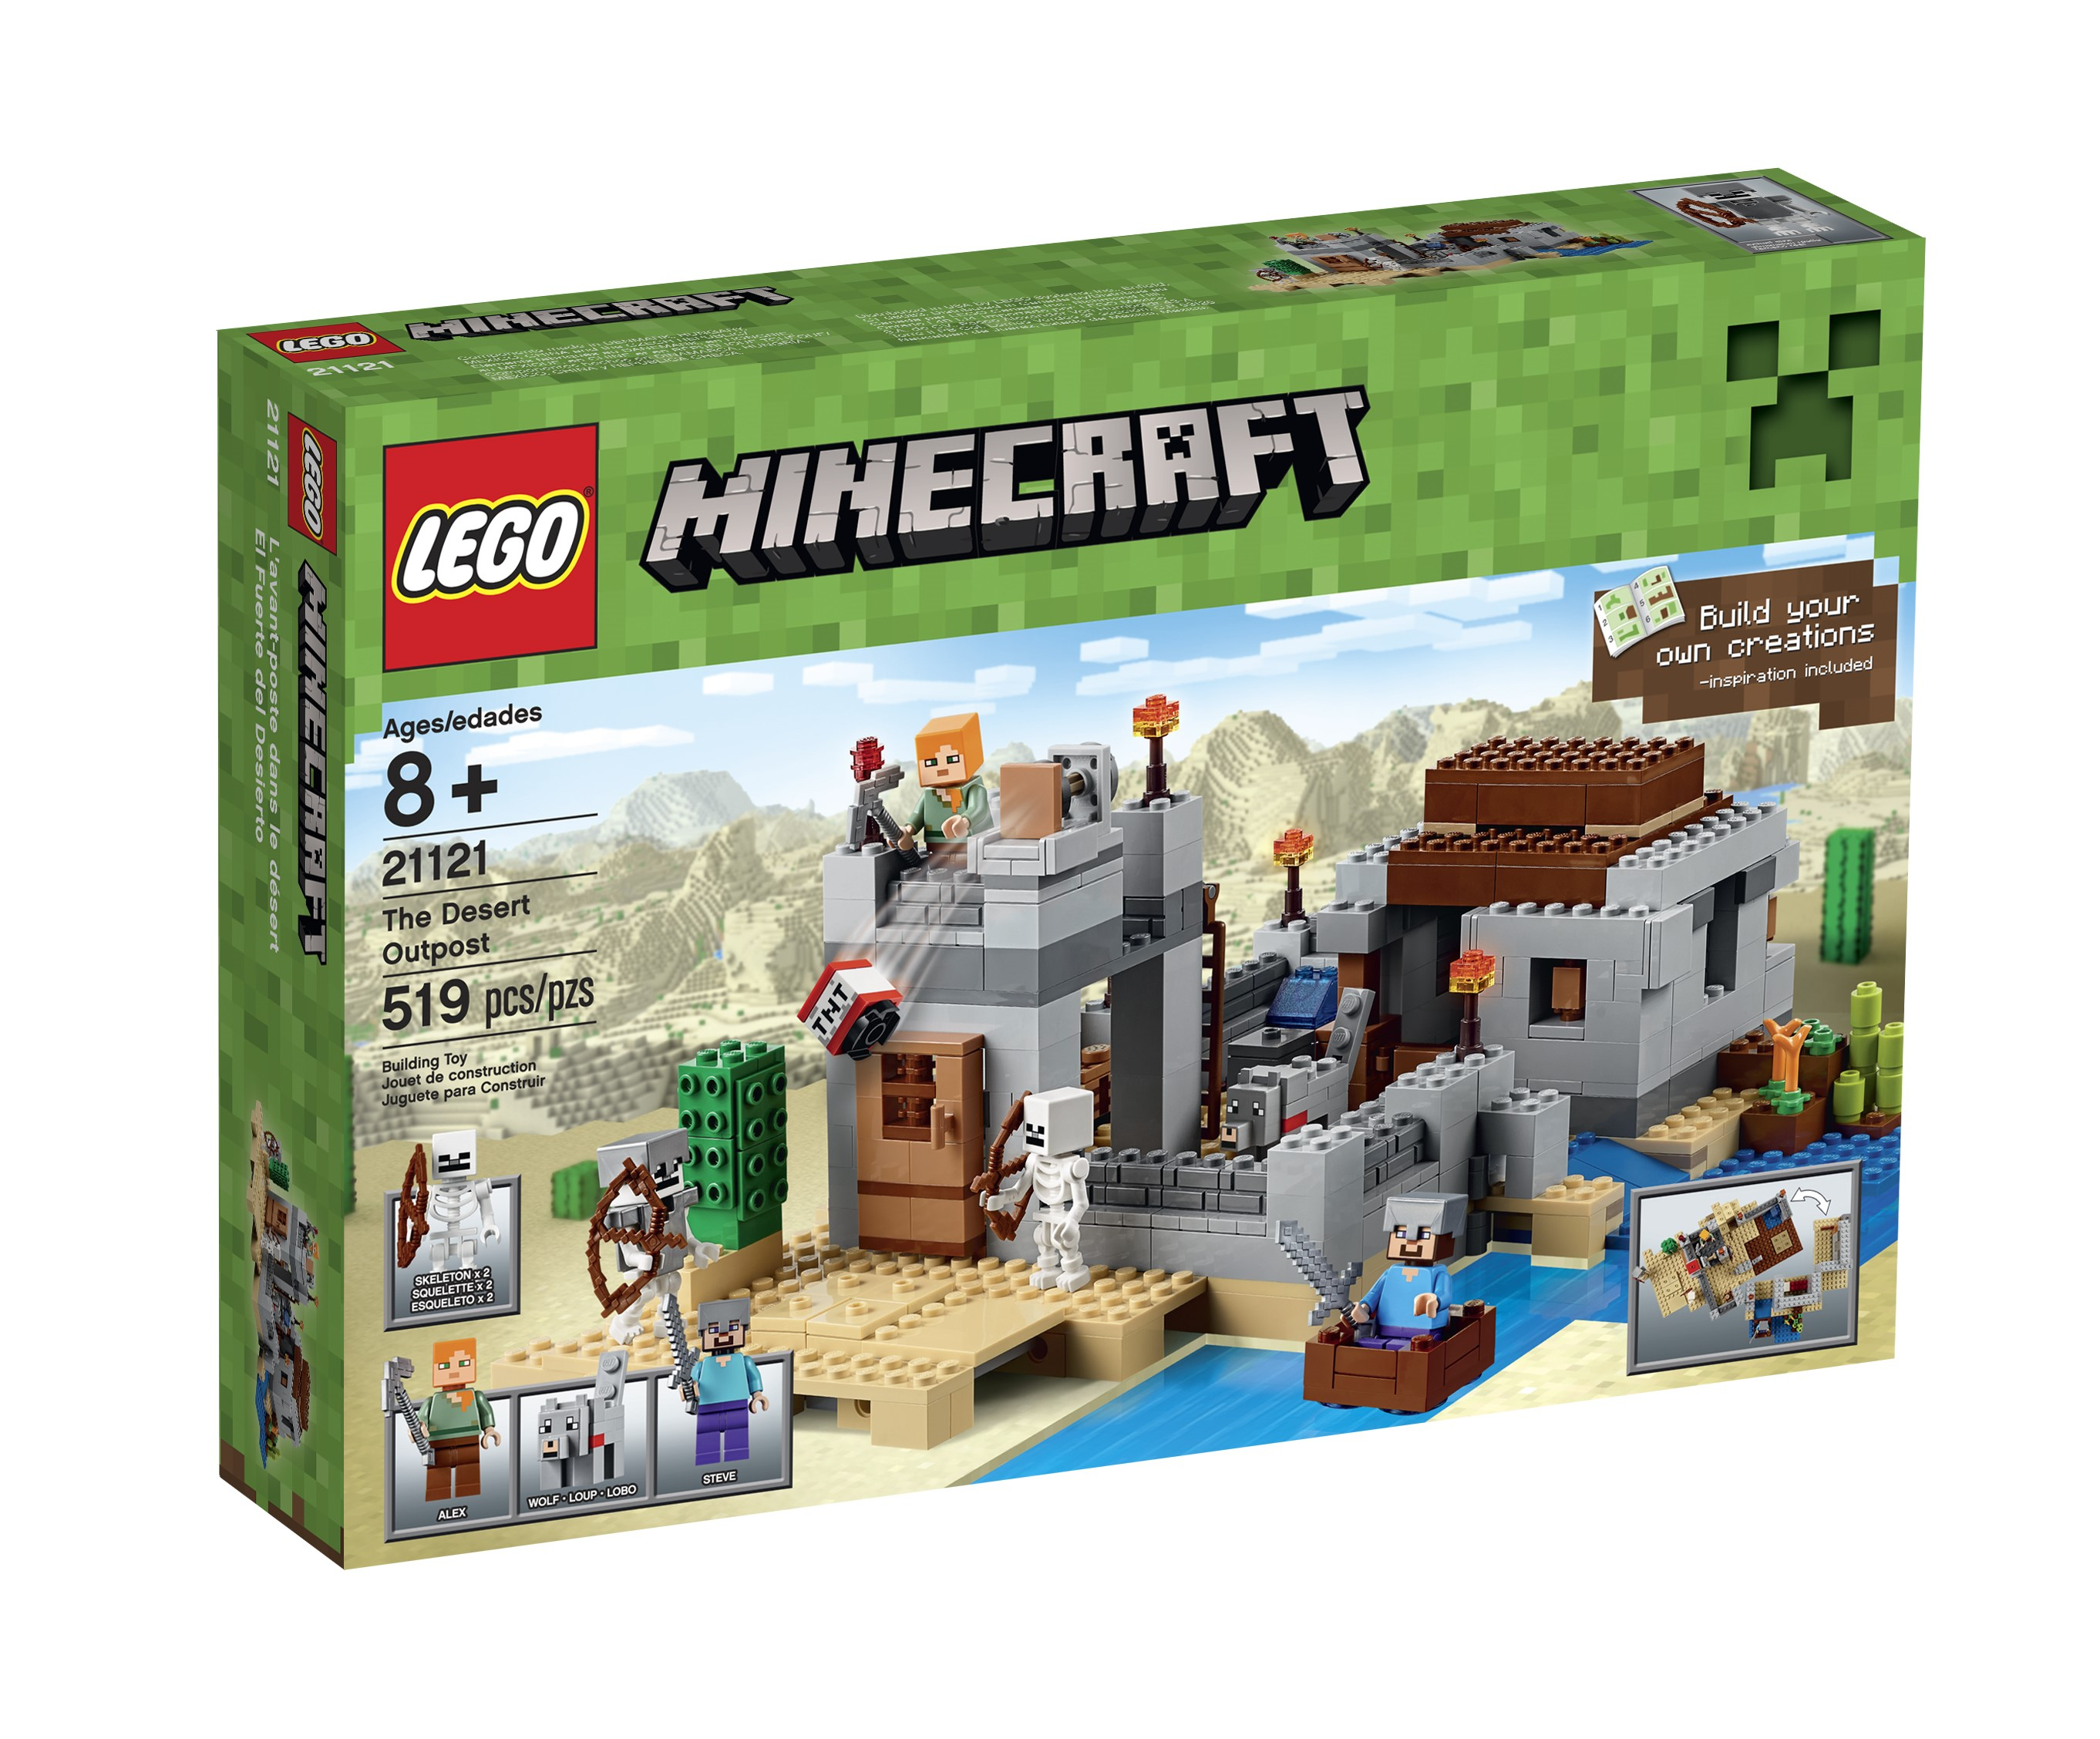 Lego Minecraft The Desert Outpost, 21121 by Lego